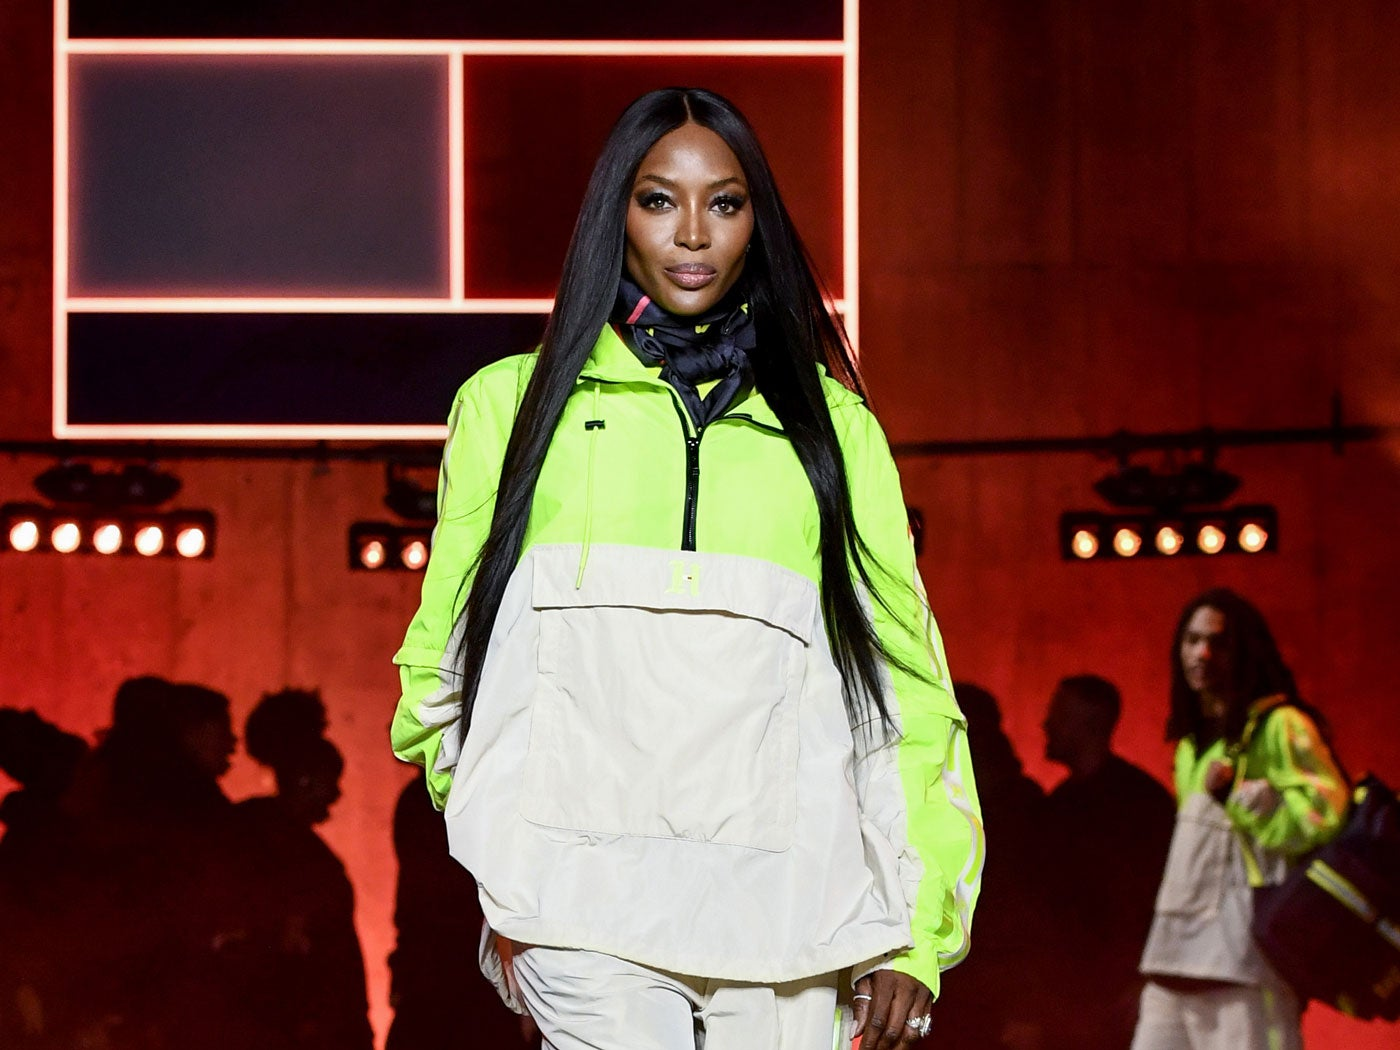 Naomi Campbell Launches Live Stream On YouTube - Essence